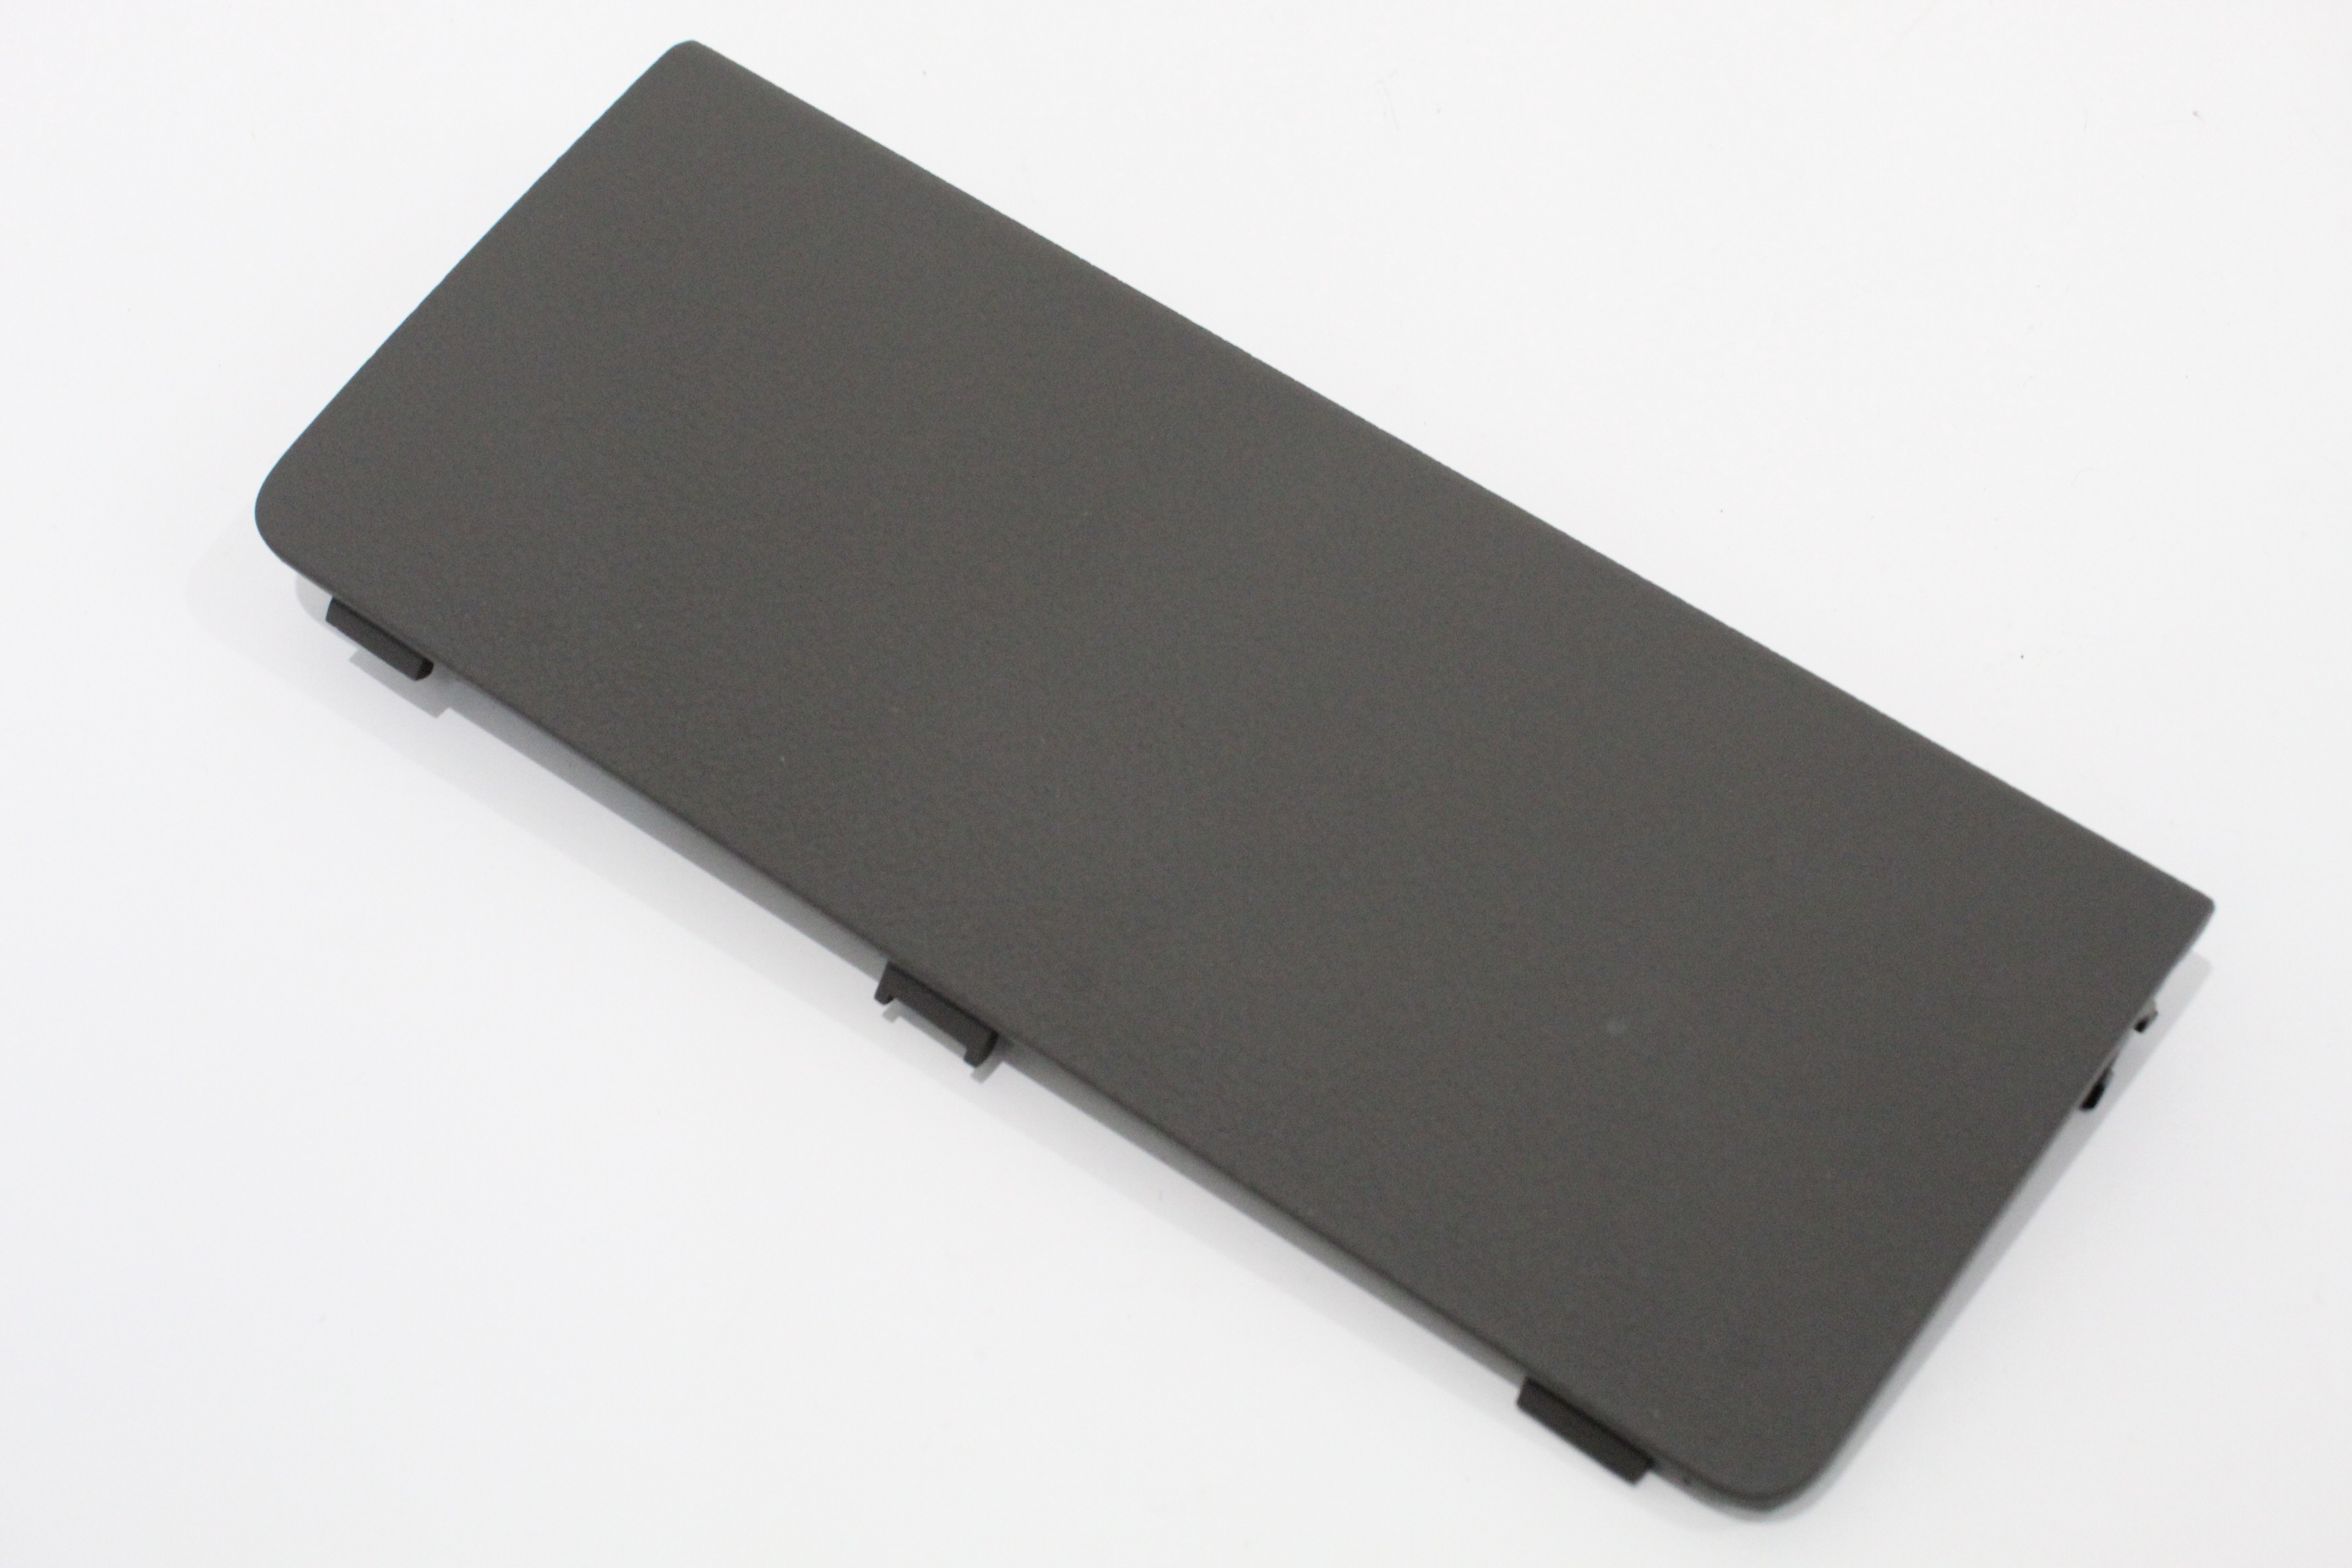 Audi A2 Fuse Box Cover : Audi a z lhd dark grey fuse box cover lid access panel